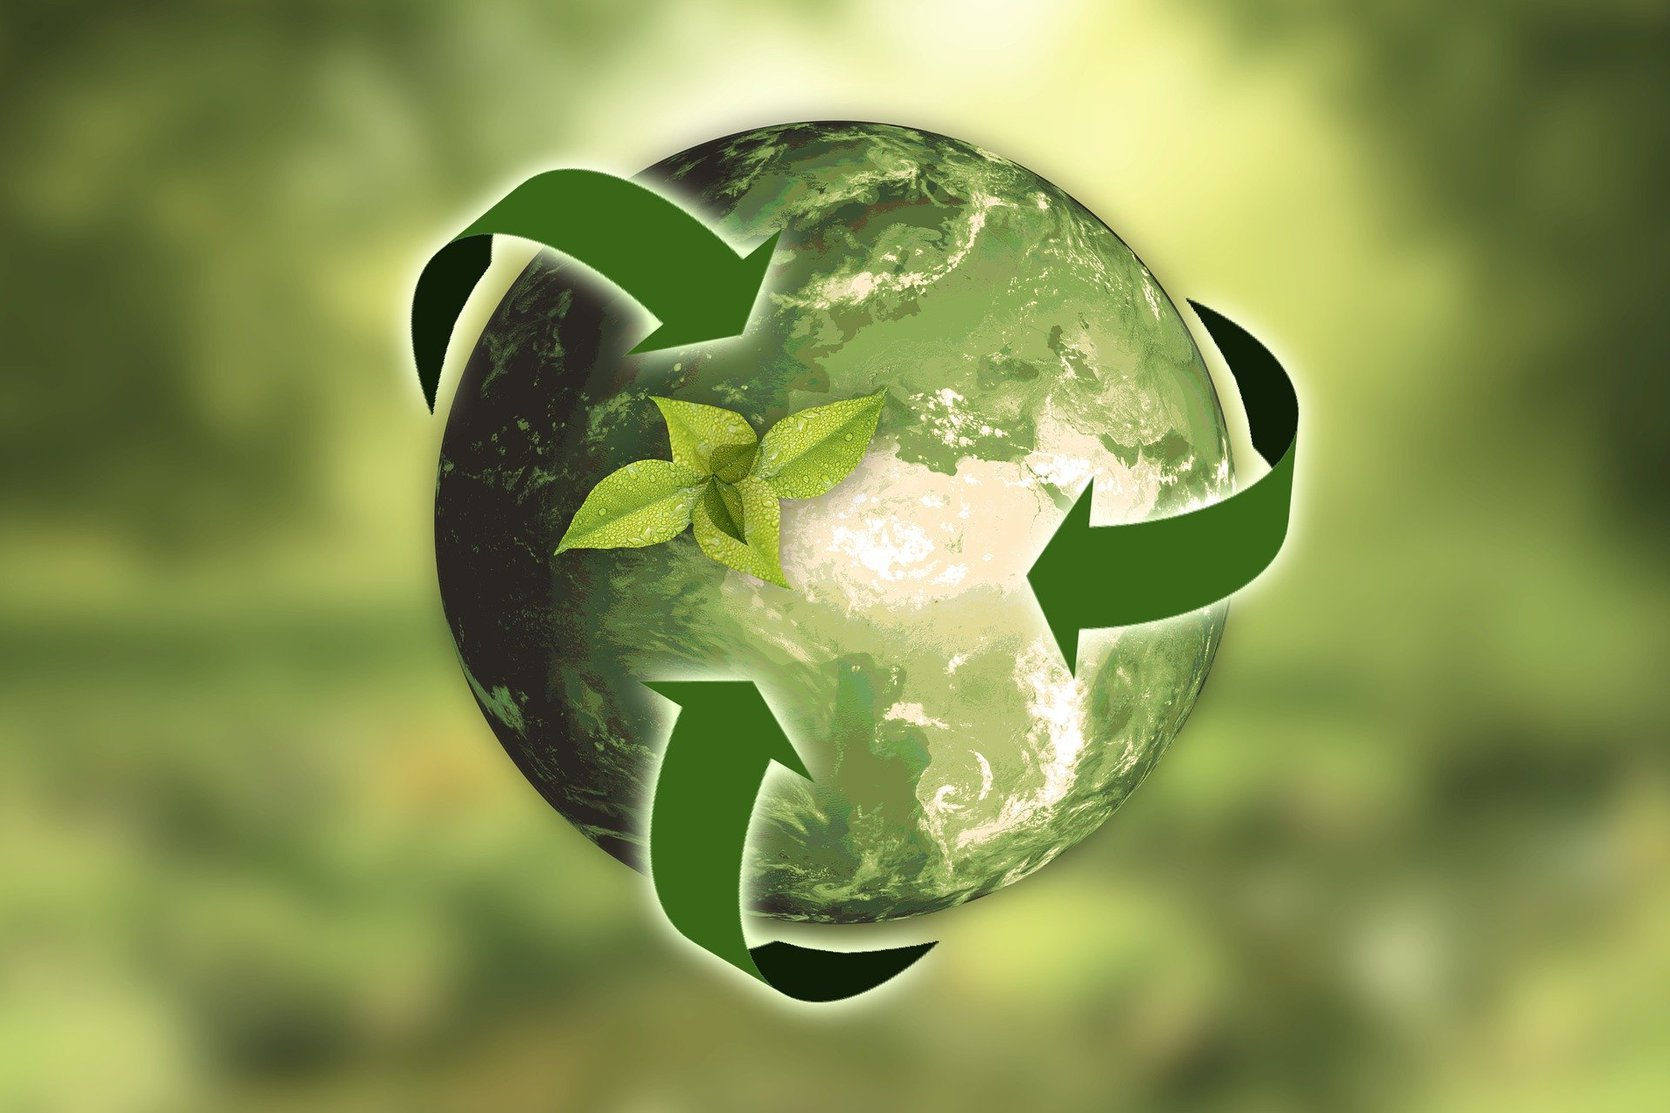 recycling-pictogram-earth-green